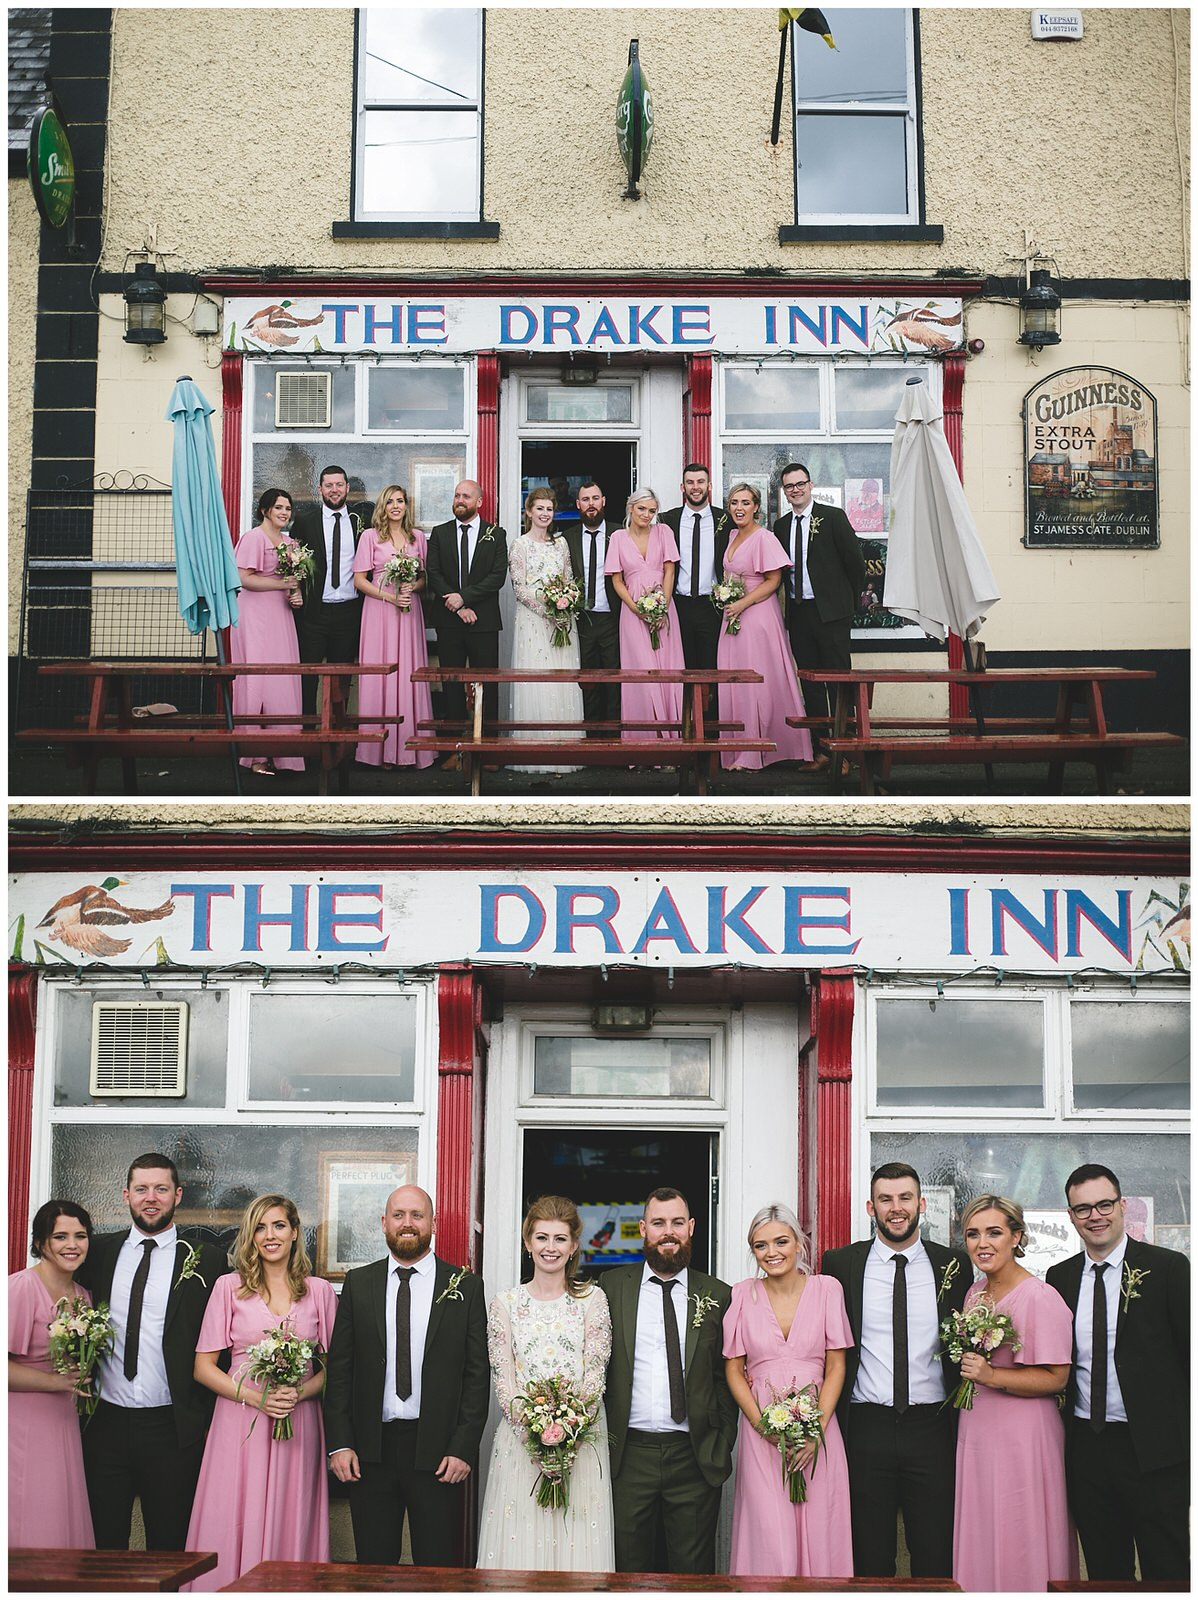 The Drake Inn Pub